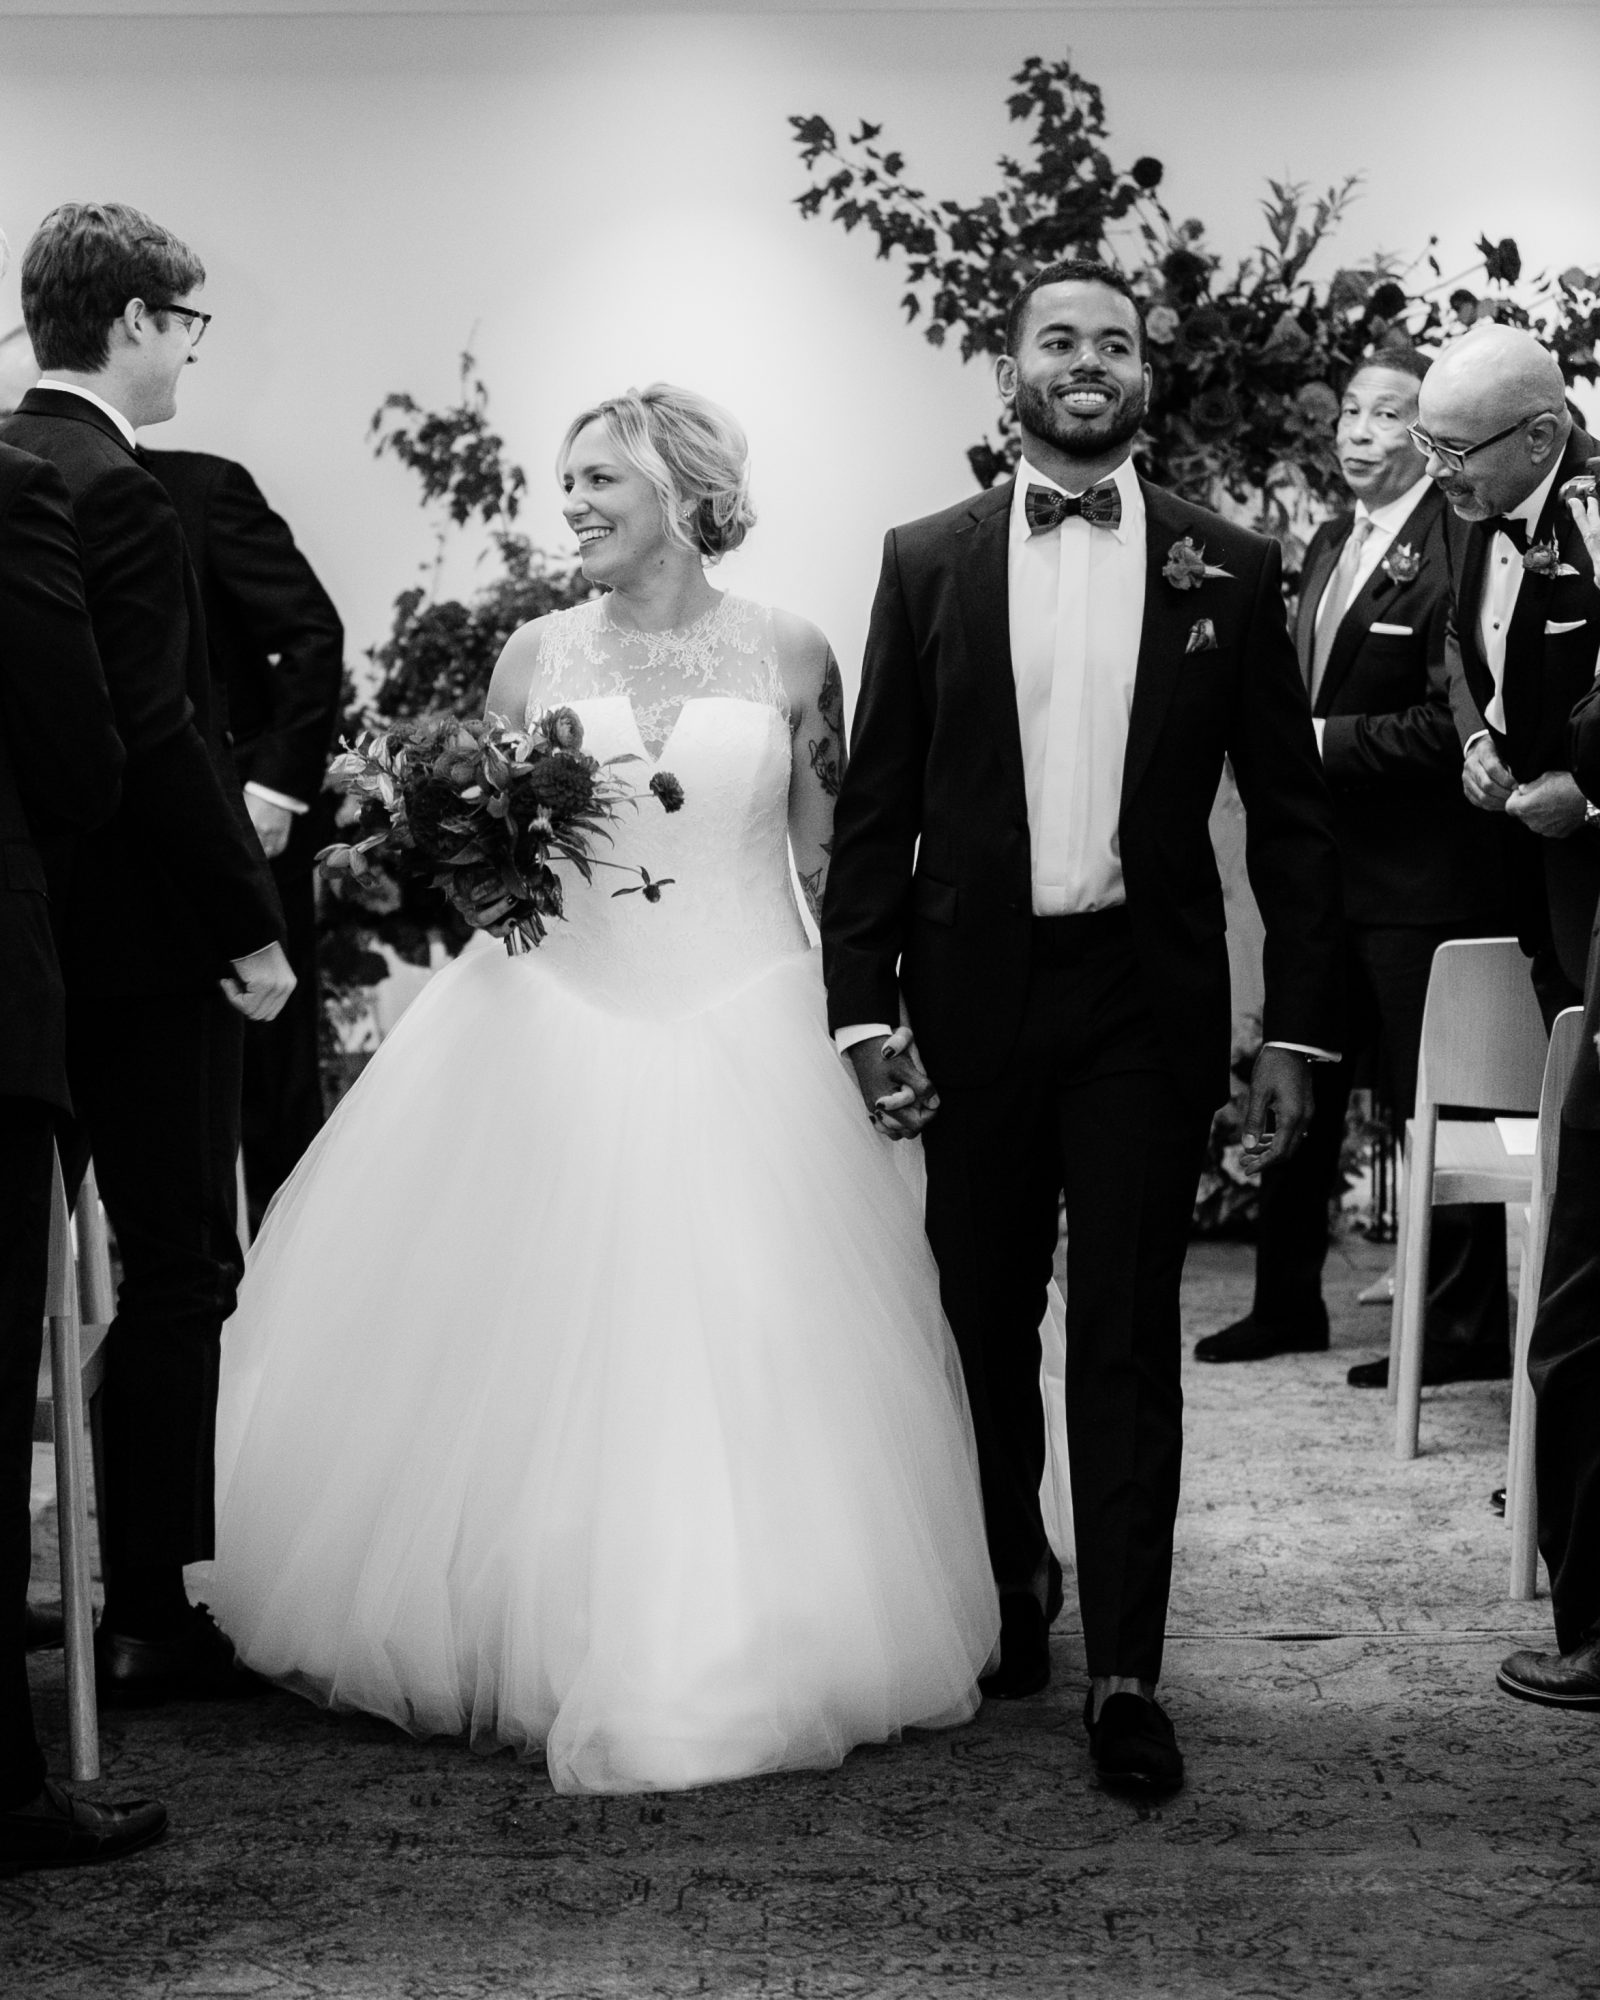 meaghan and david bride and groom recessional